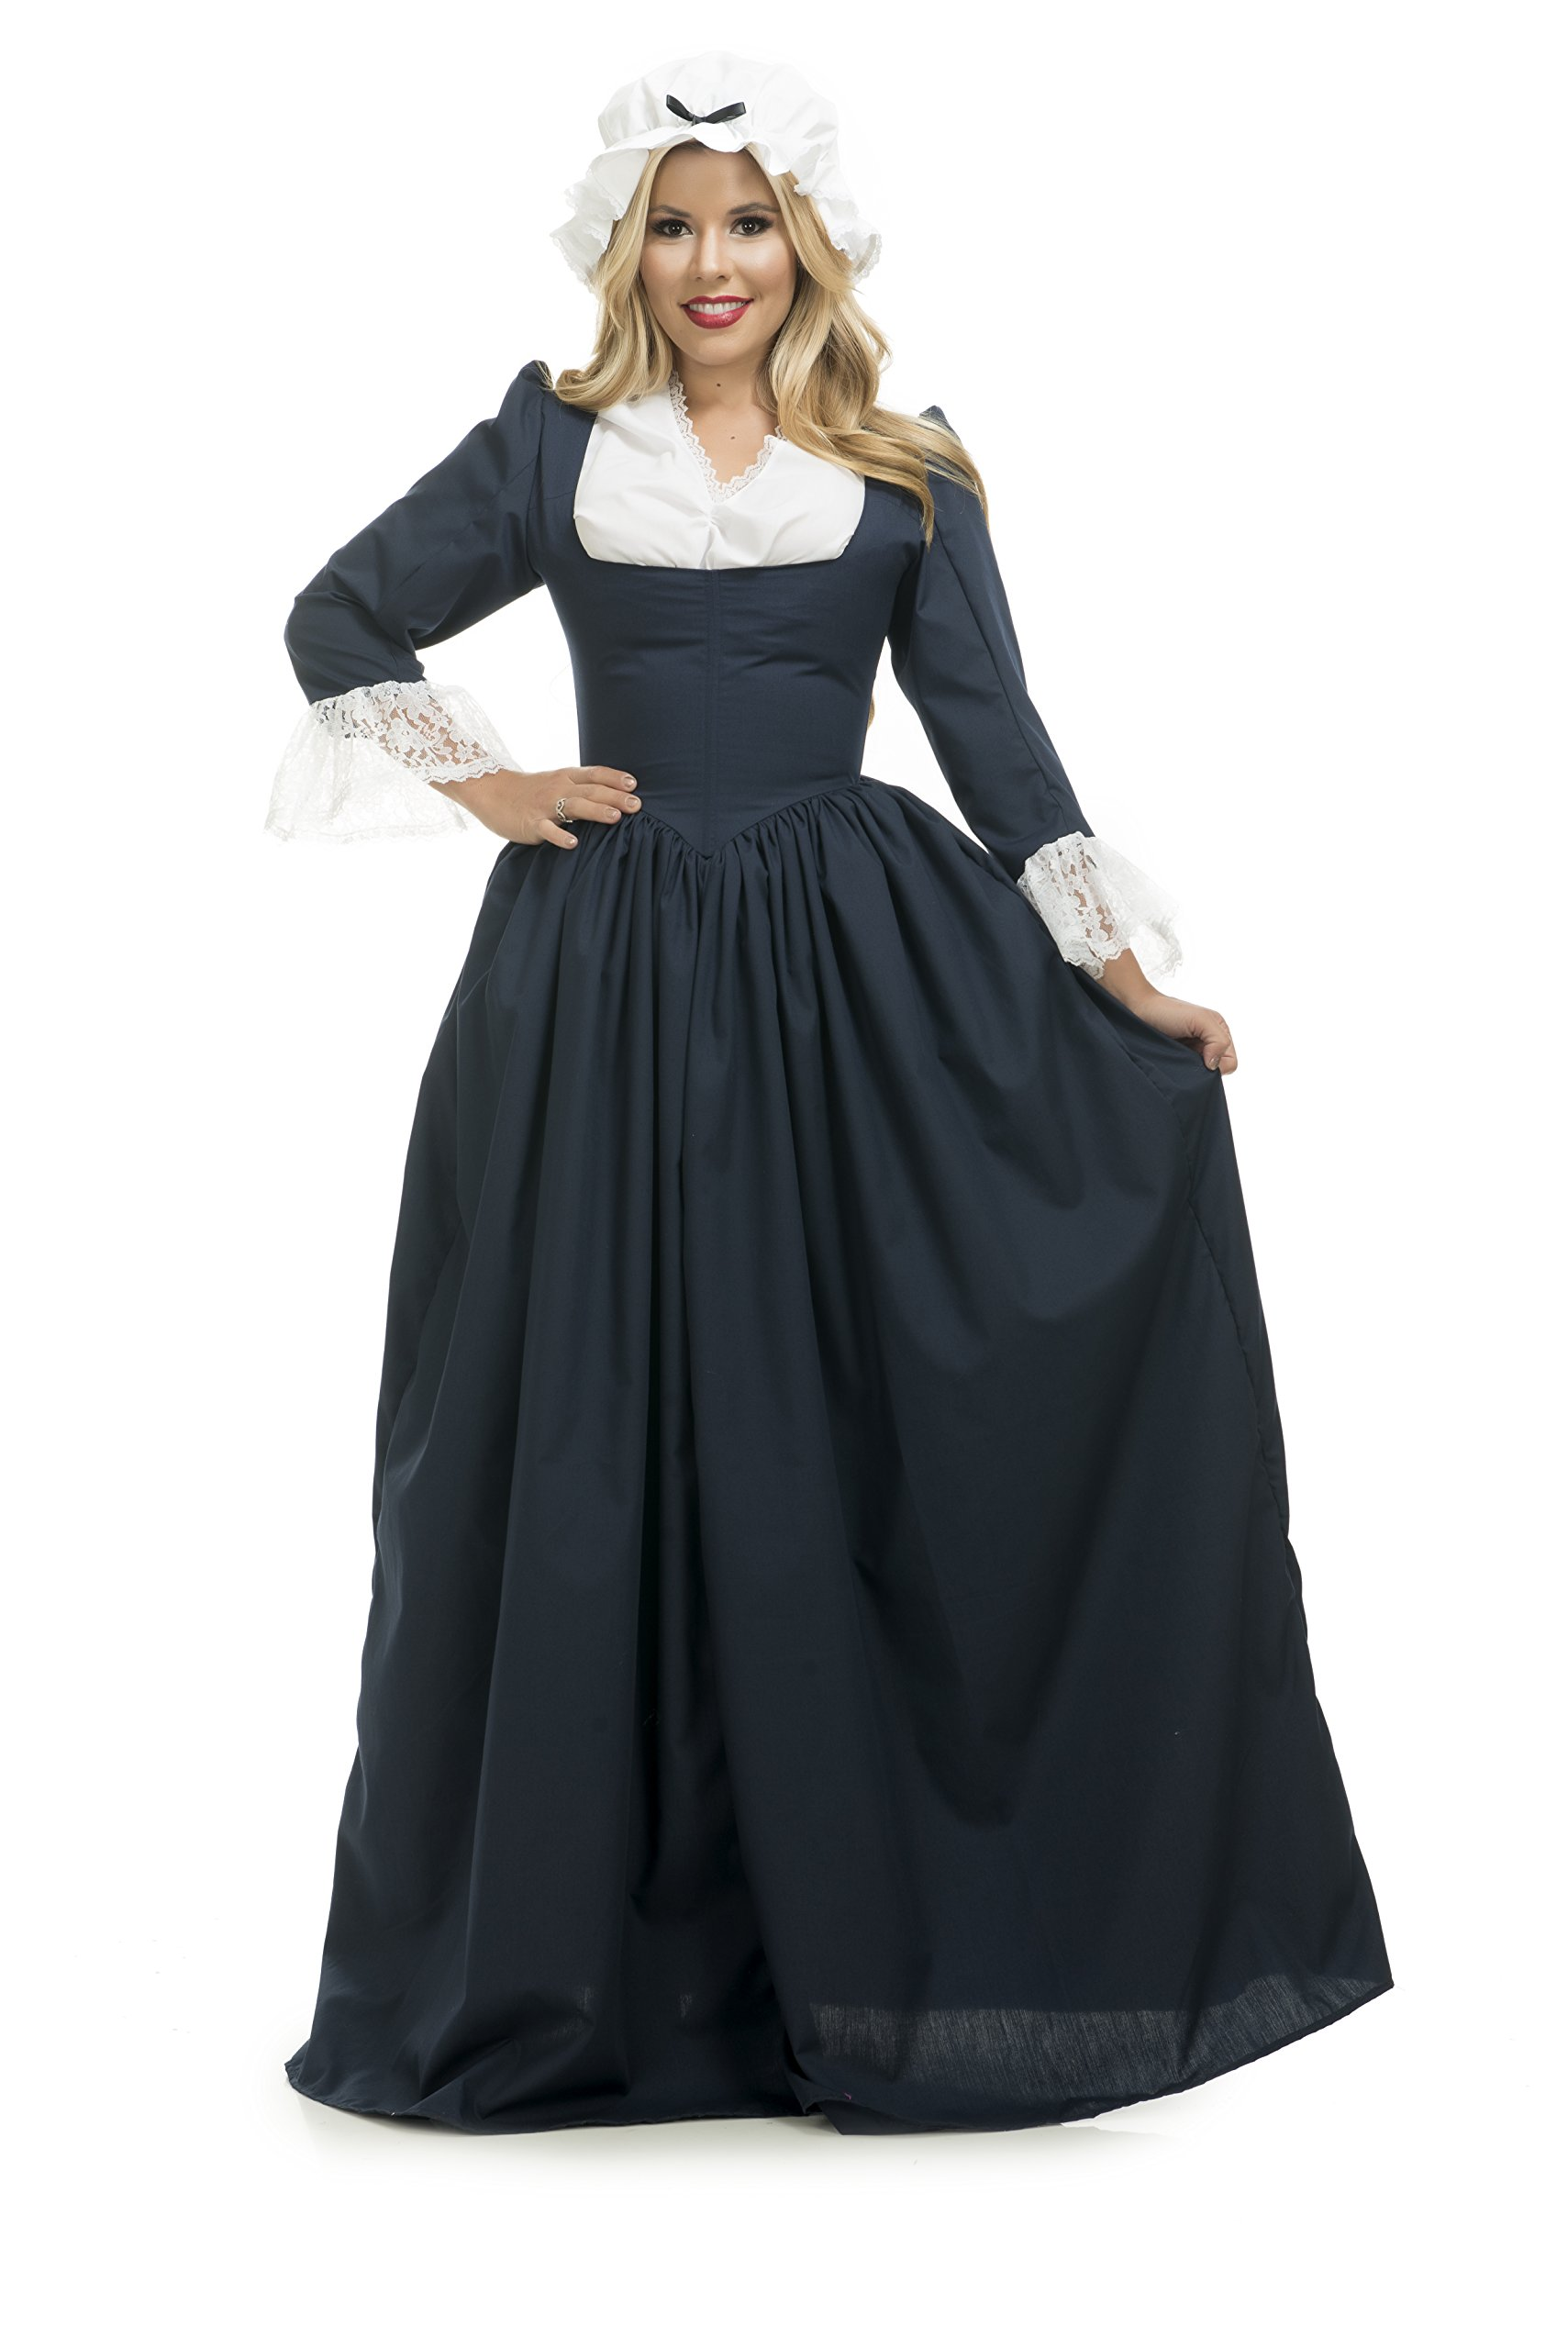 Charades Women's Colonial Woman, Navy Blue, Medium